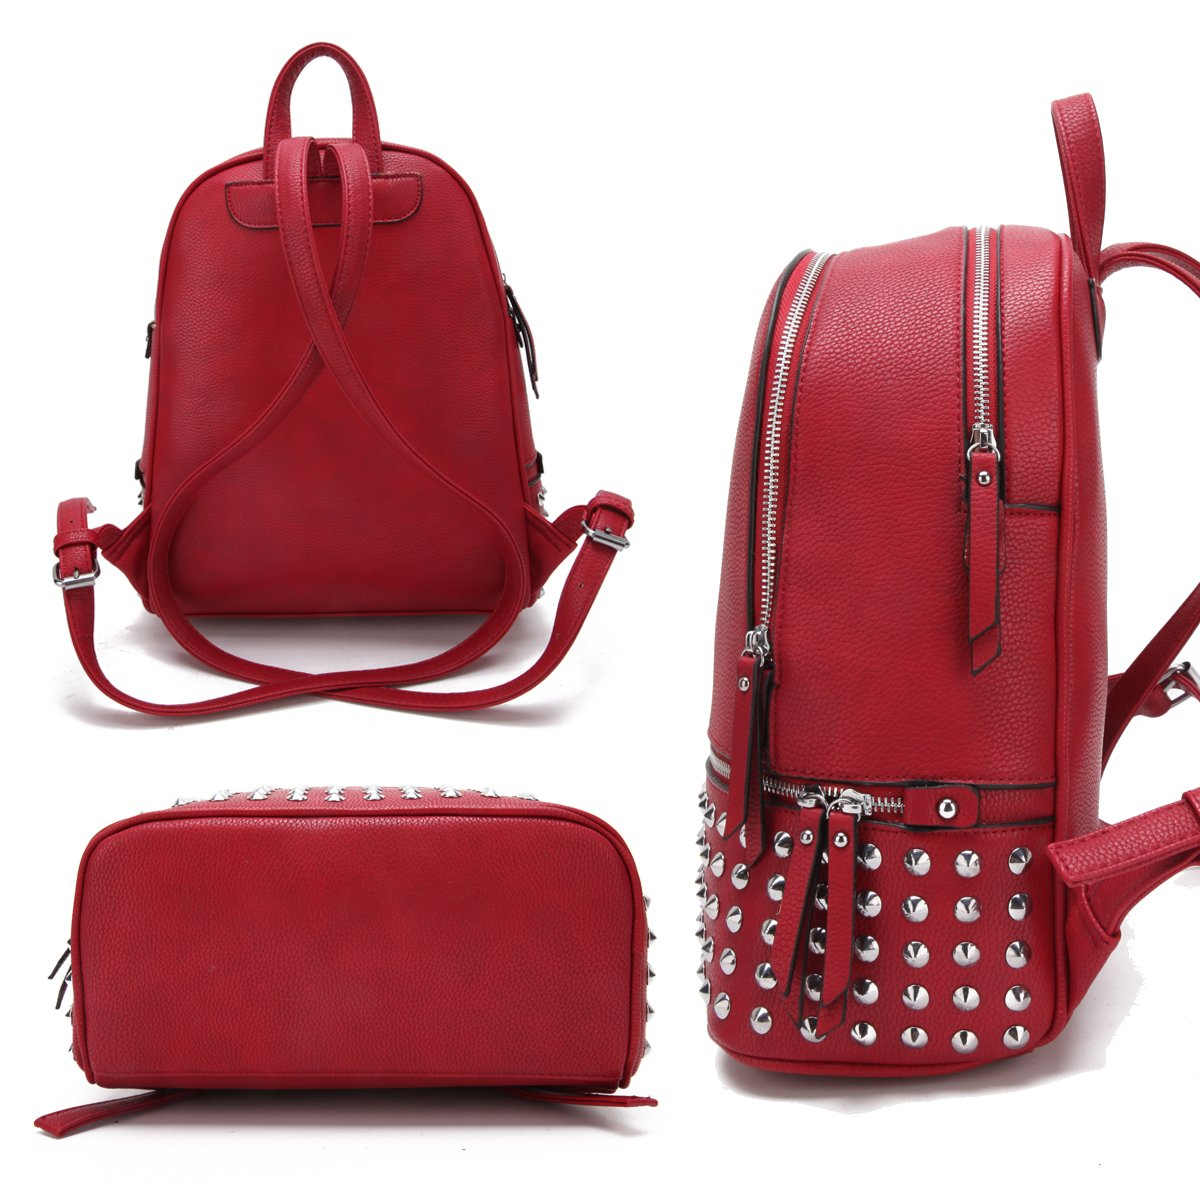 MMK collection Women Fashion Backpack with wallet (2443)~Designer Purse for Women ~Multi Pocket Backpack~ Beautiful Designer Handbag Set(2443/7025) (MA-XL-21-7580-RD 168 RD) by Marco M. Kerry (Image #3)